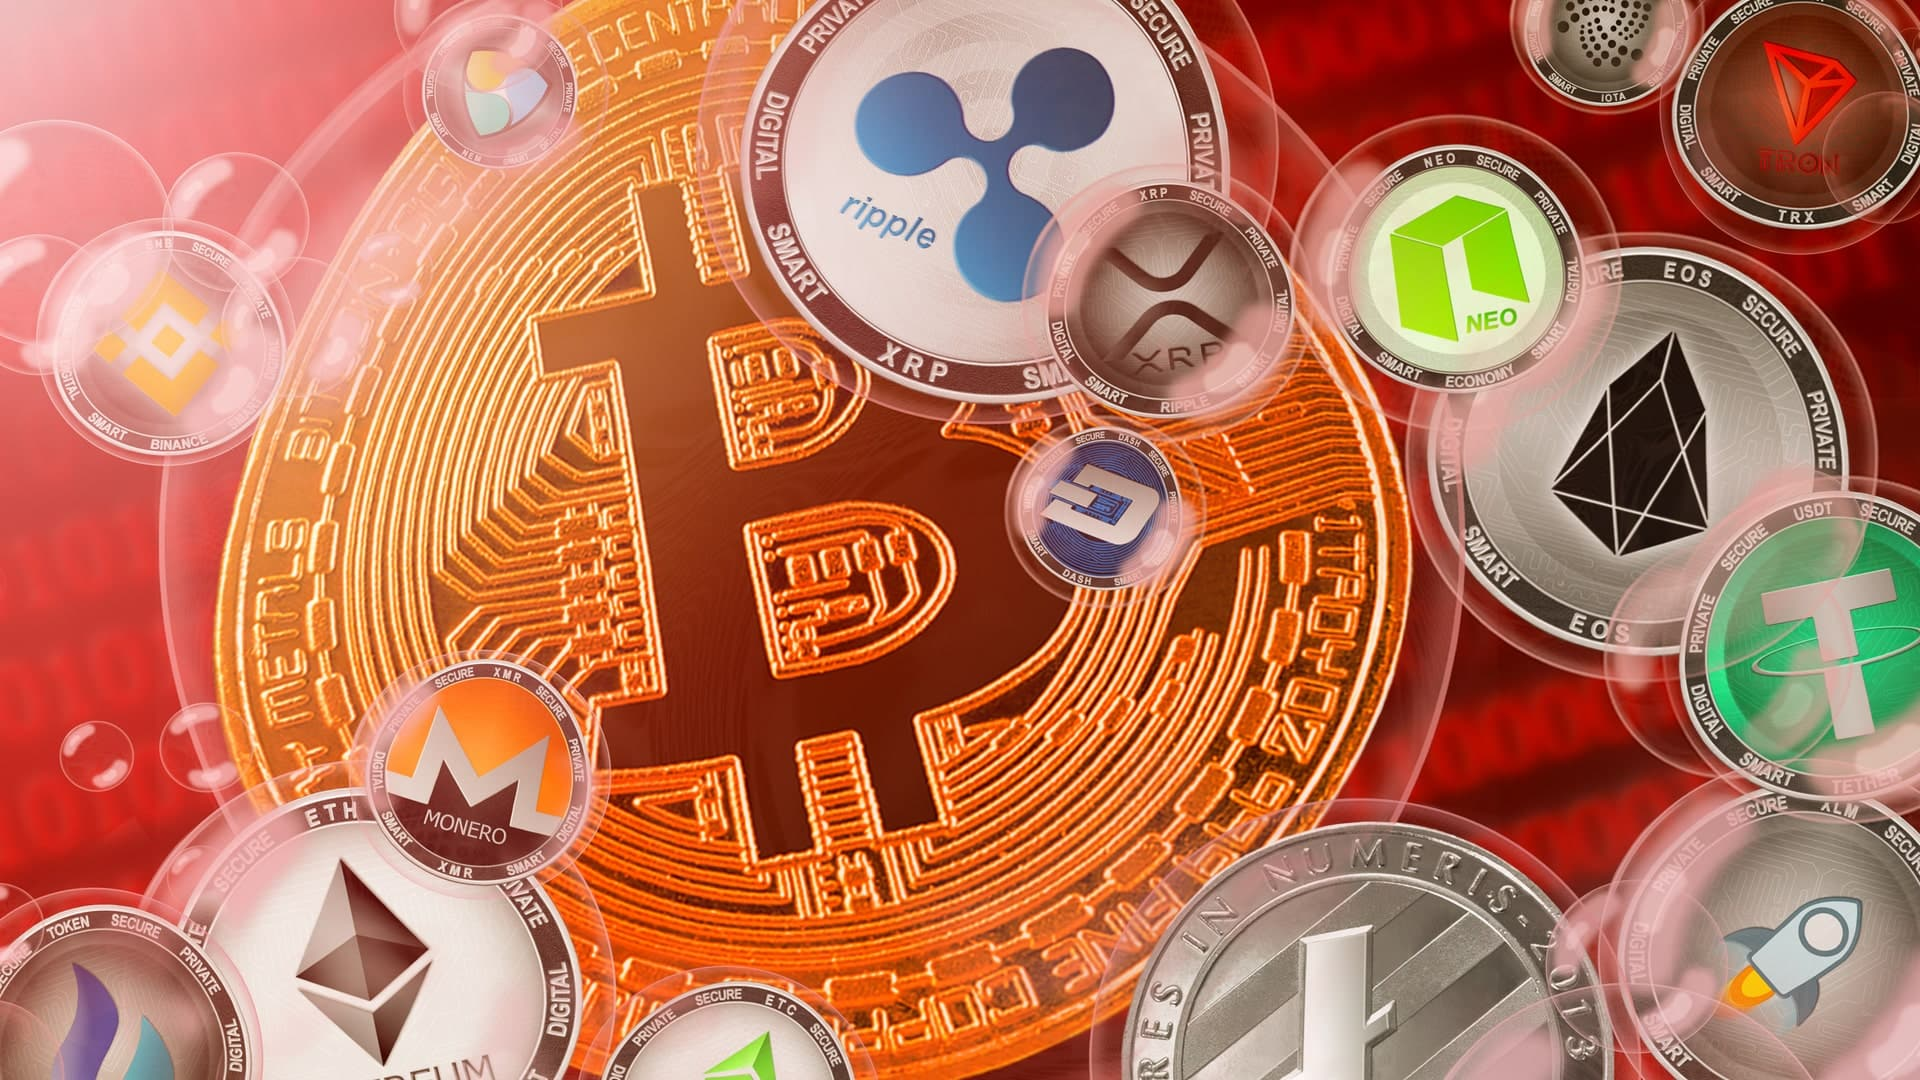 Investor Michael Burry warns that cryptocurrencies are in the bubble!